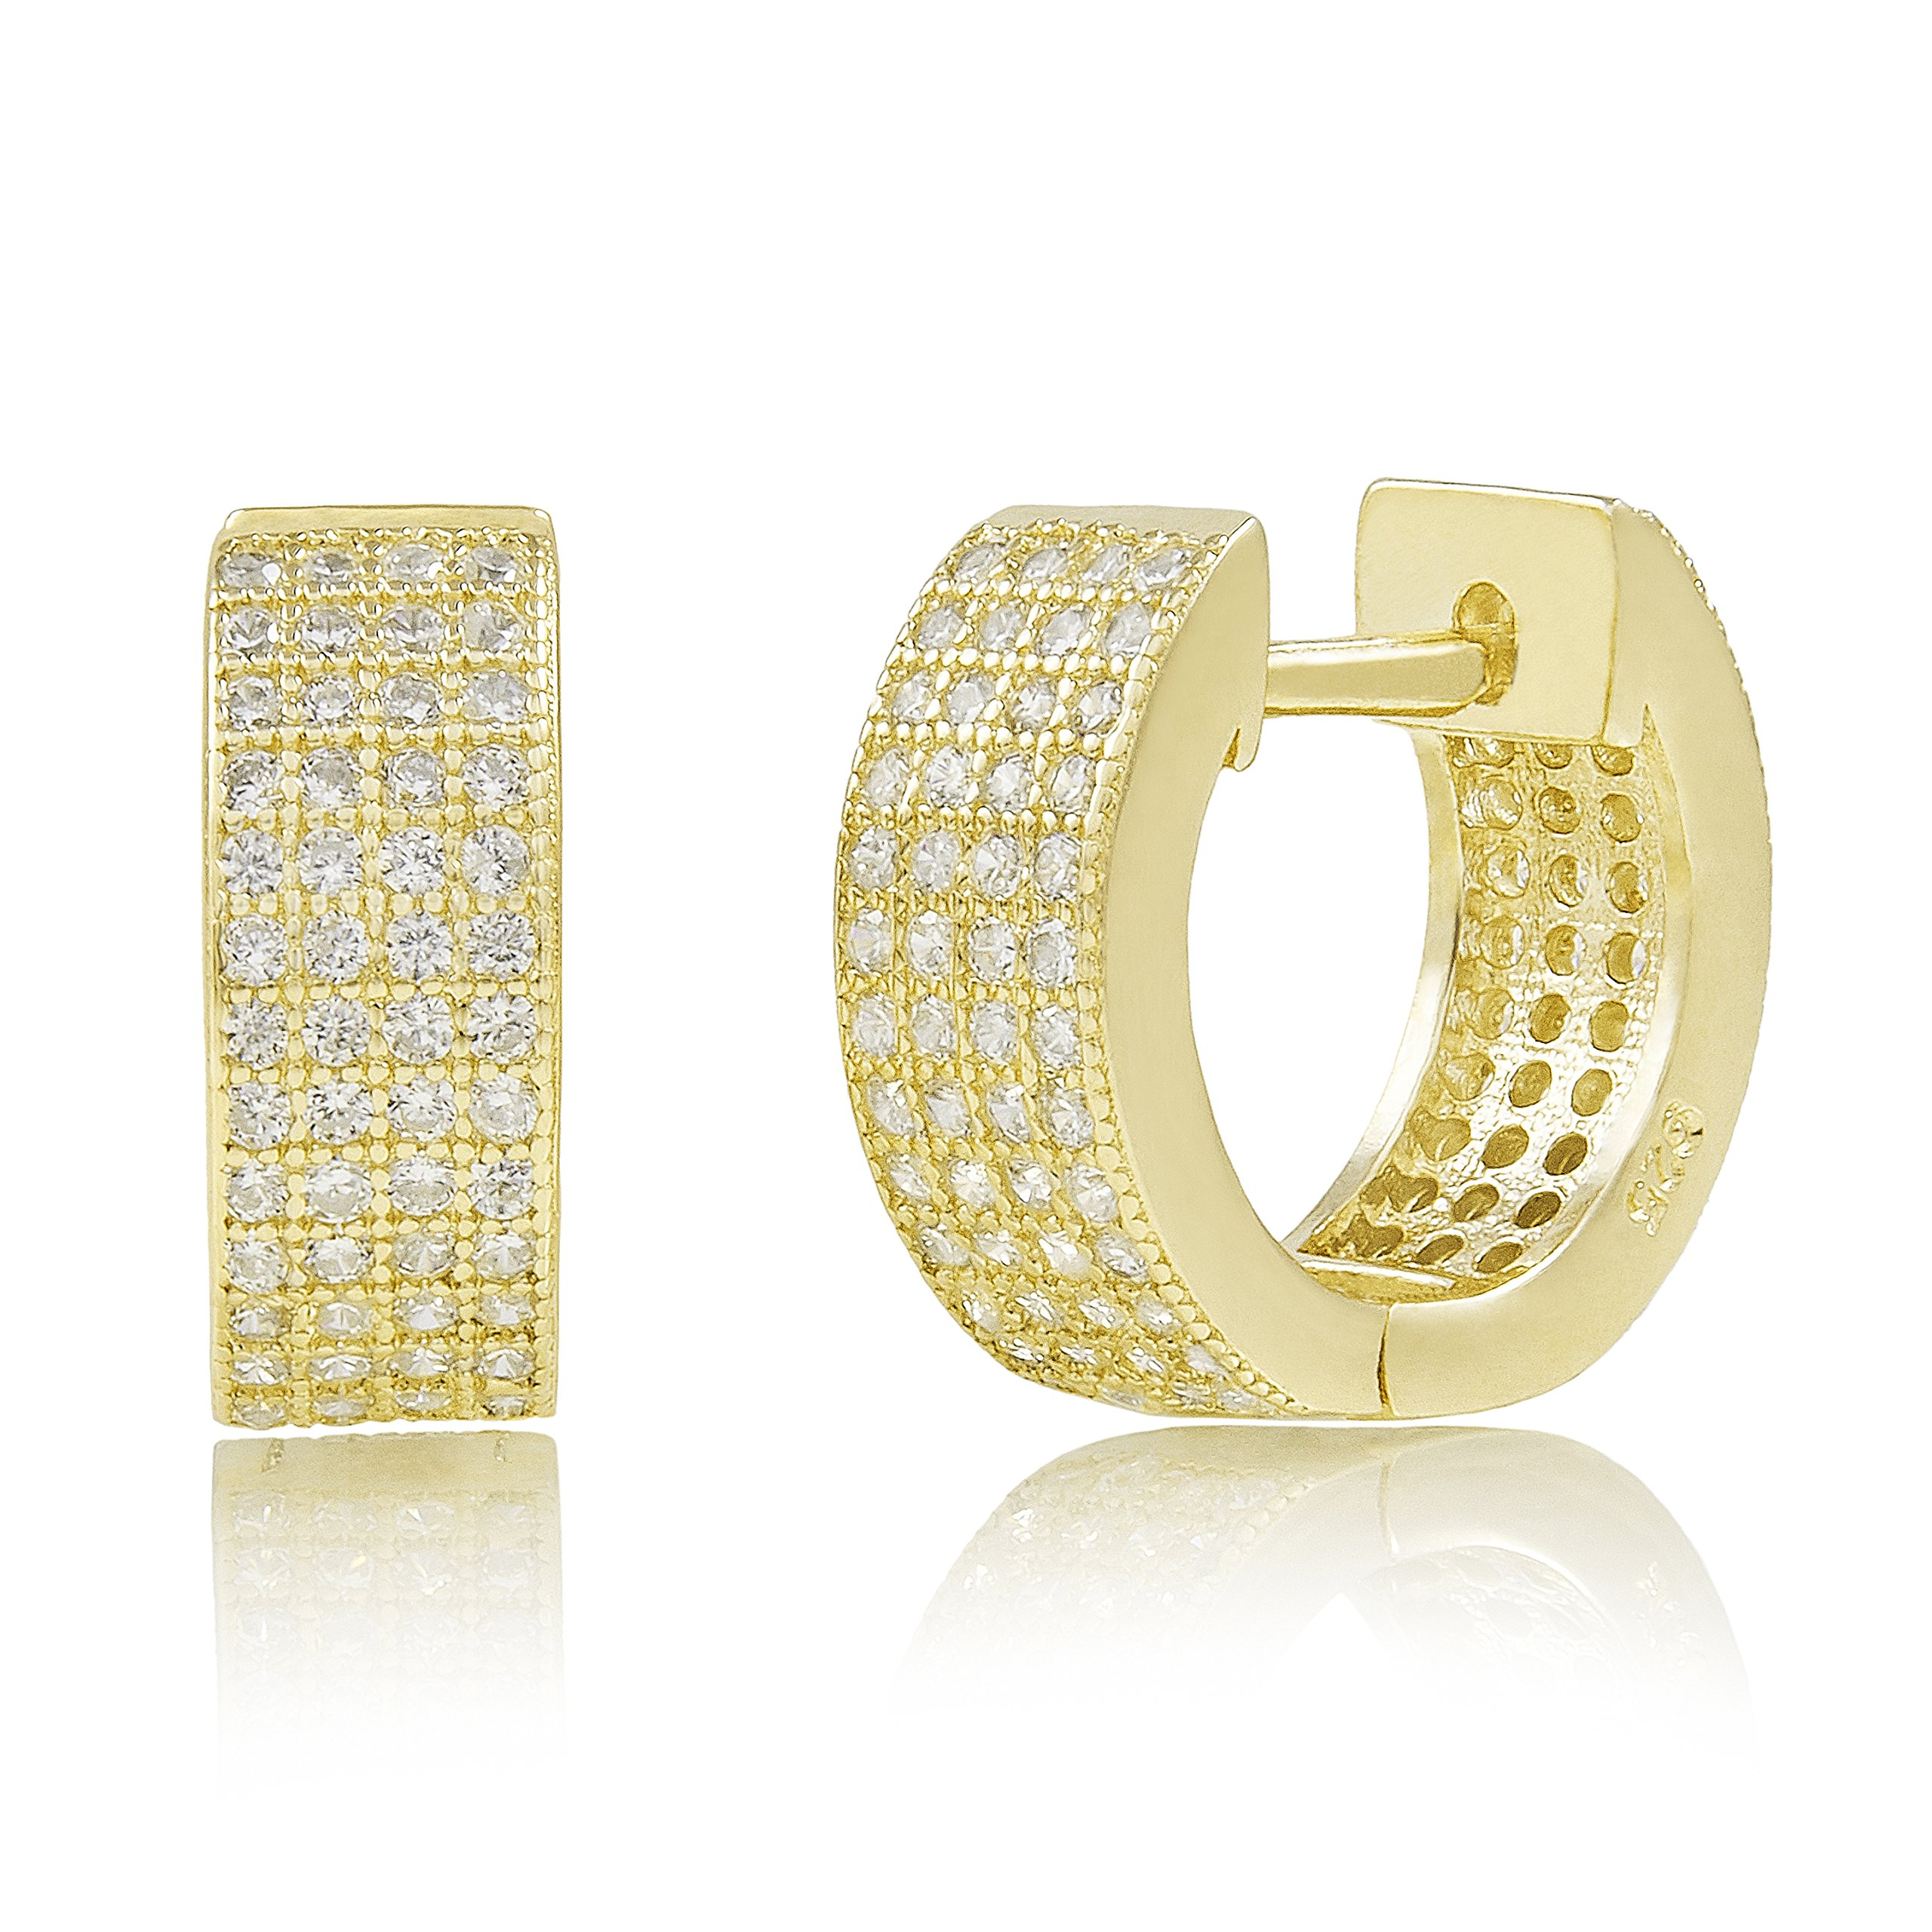 Yellow Gold Plated Sterling Silver Pave Cubic Zirconia Huggie Hoop Earrings